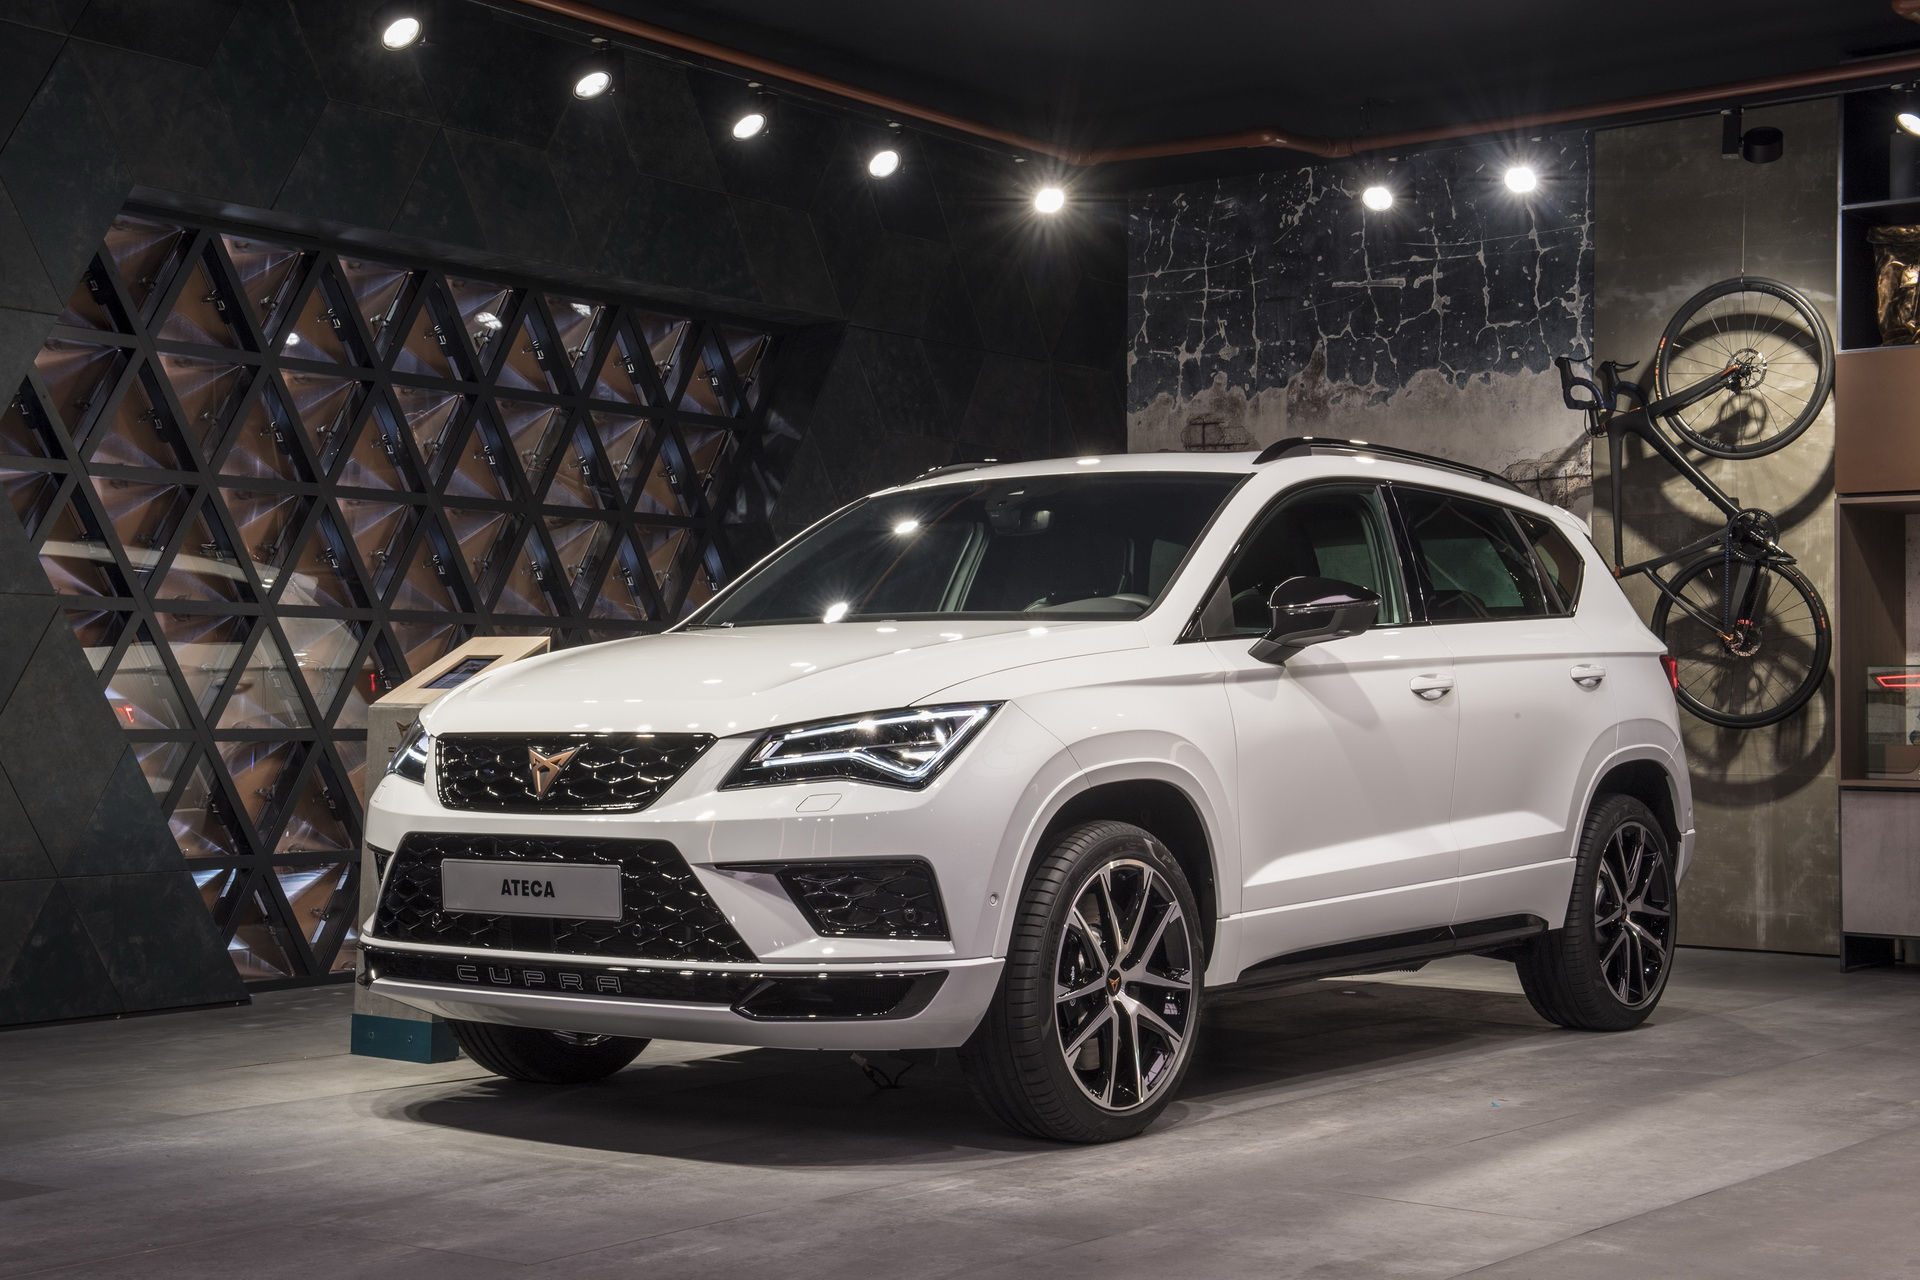 cupra ateca priced from 35 900 in the uk order books now open carscoops. Black Bedroom Furniture Sets. Home Design Ideas